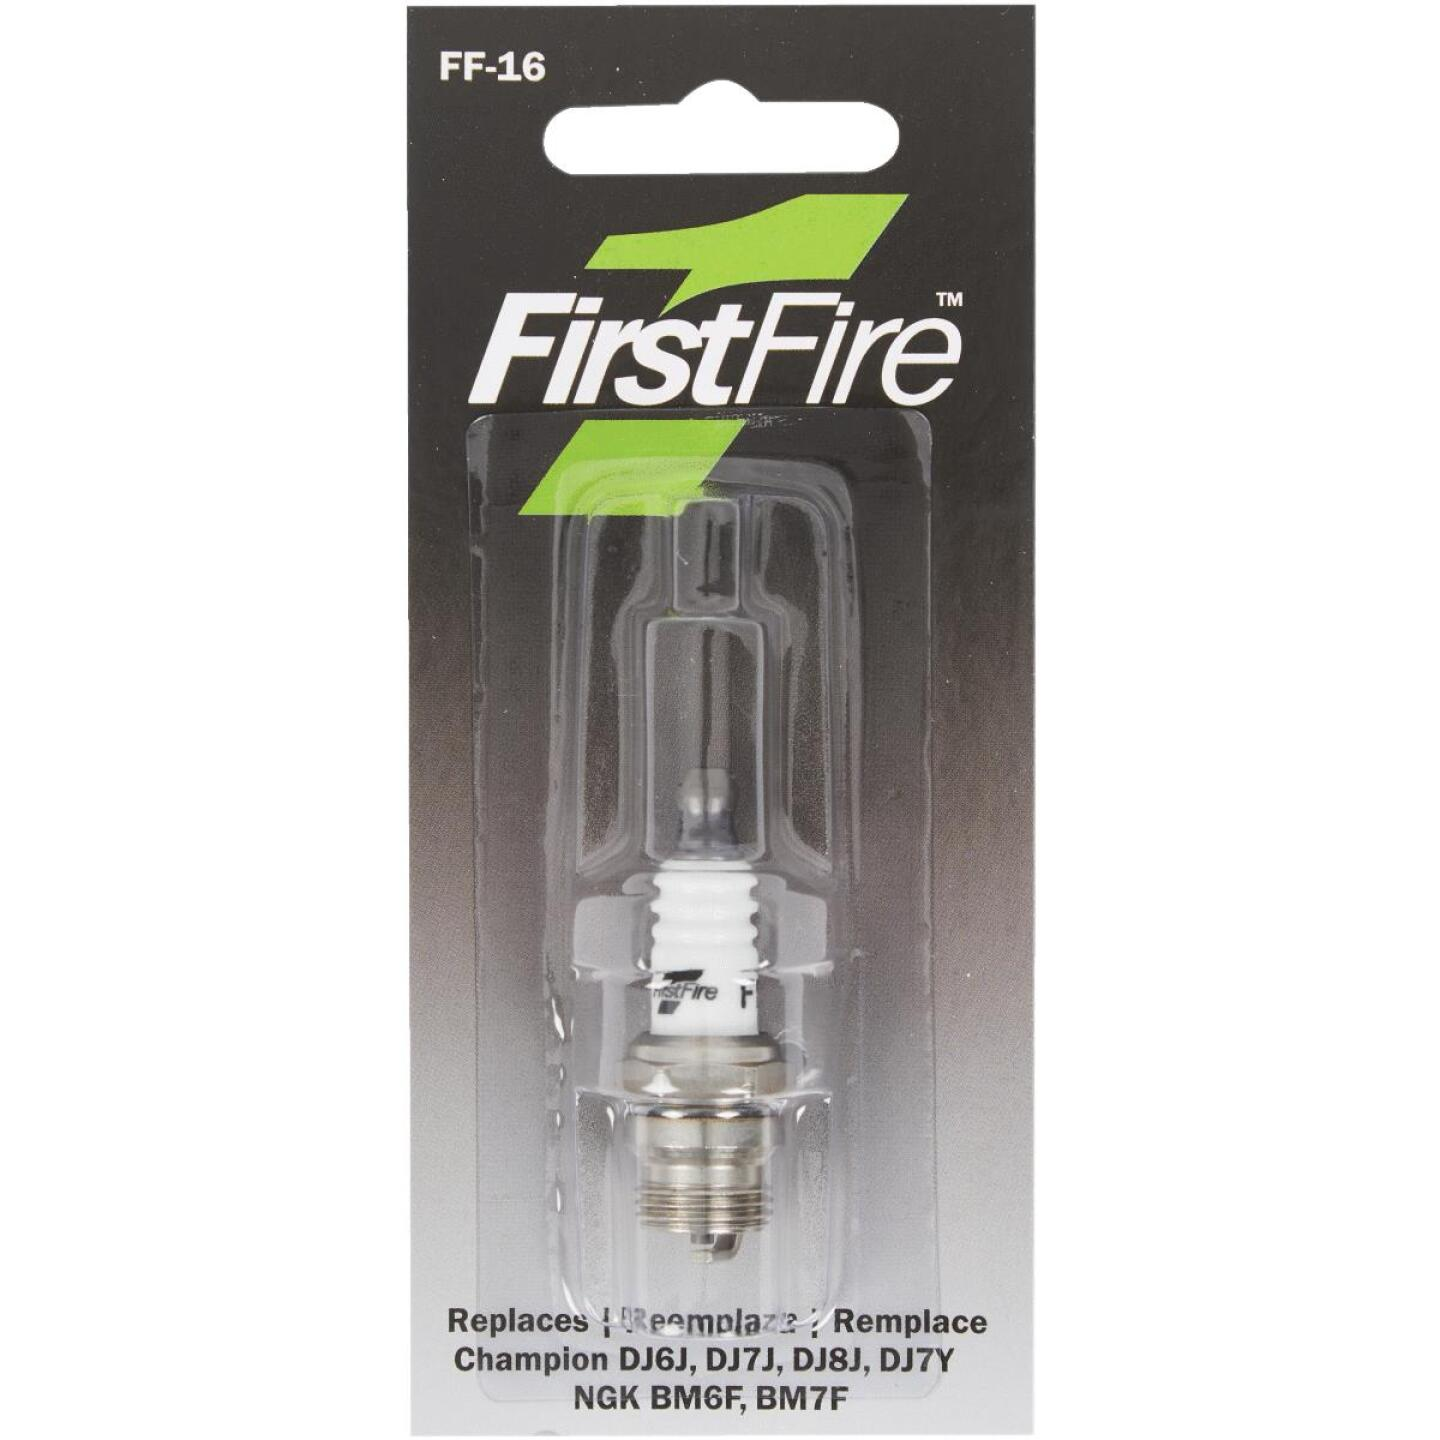 Arnold FirstFire 5/8 in. Spark Plug Image 2